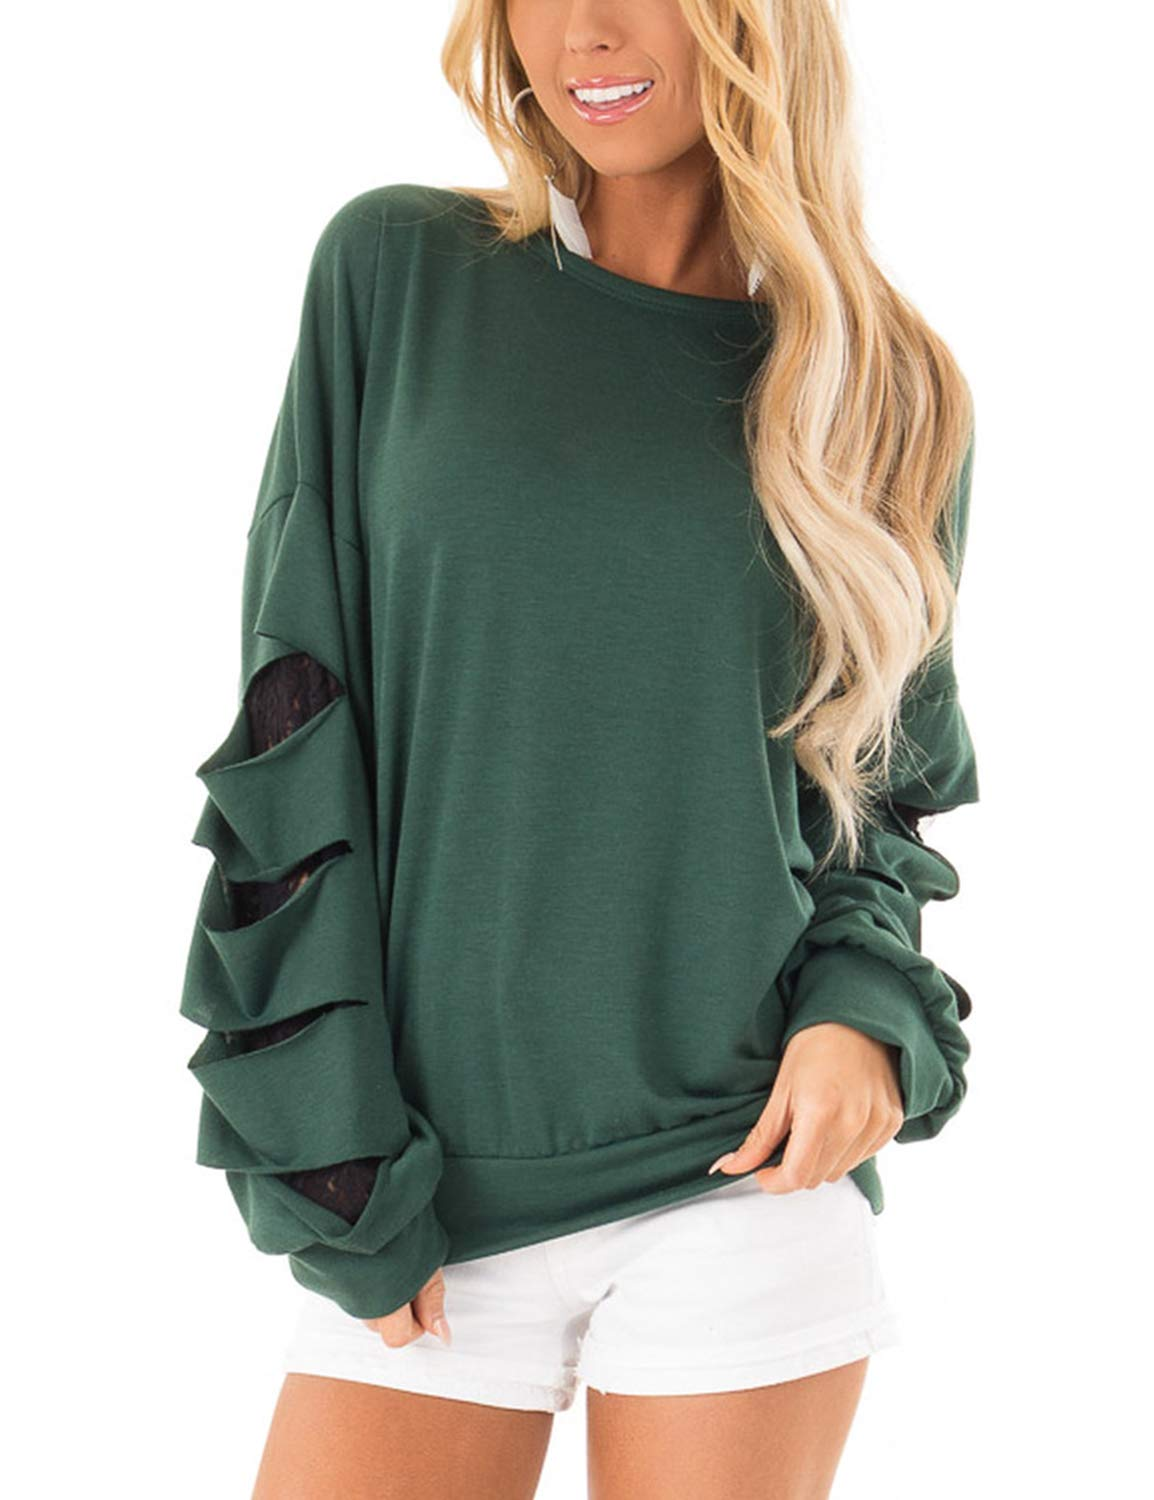 Blooming Jelly Womens Long Sleeve Round Neck Ripped Oversized Shirt Top Green